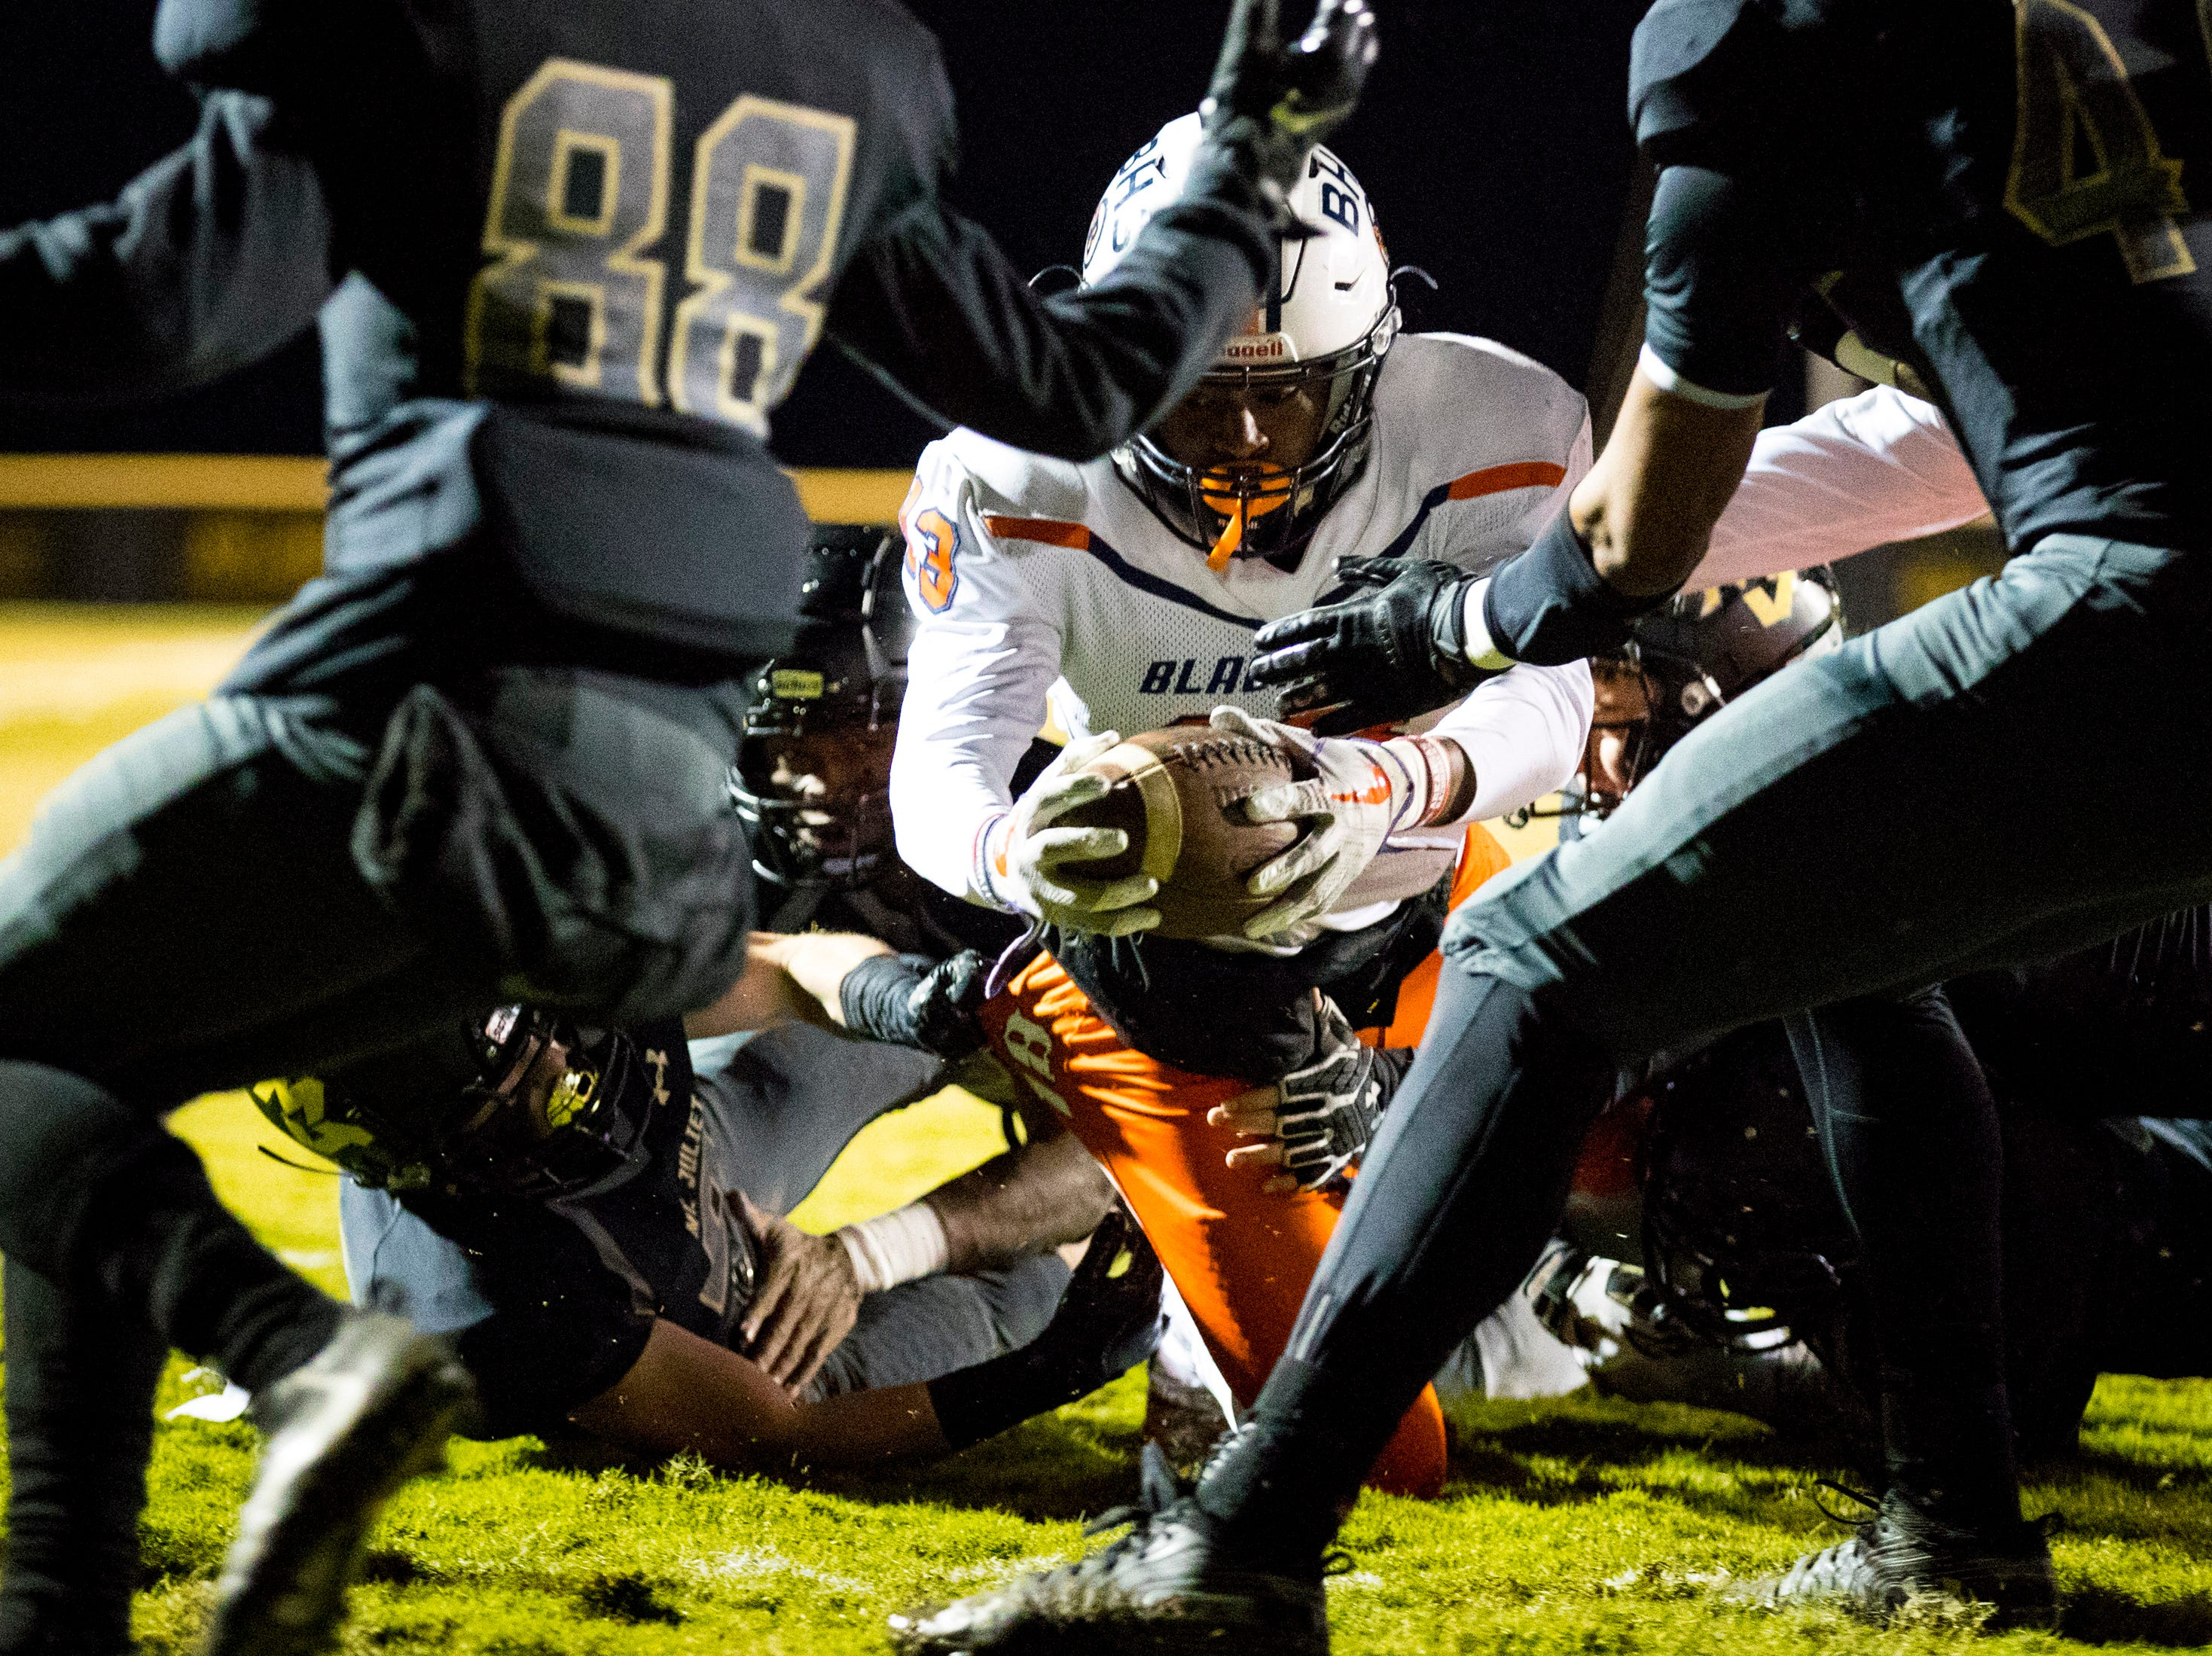 Blackman's Trey Knox (13) falls into the end zone during Mt. Juliet's game against Blackman at Mt. Juliet High School in Mt. Juliet on Friday, Nov. 9, 2018.